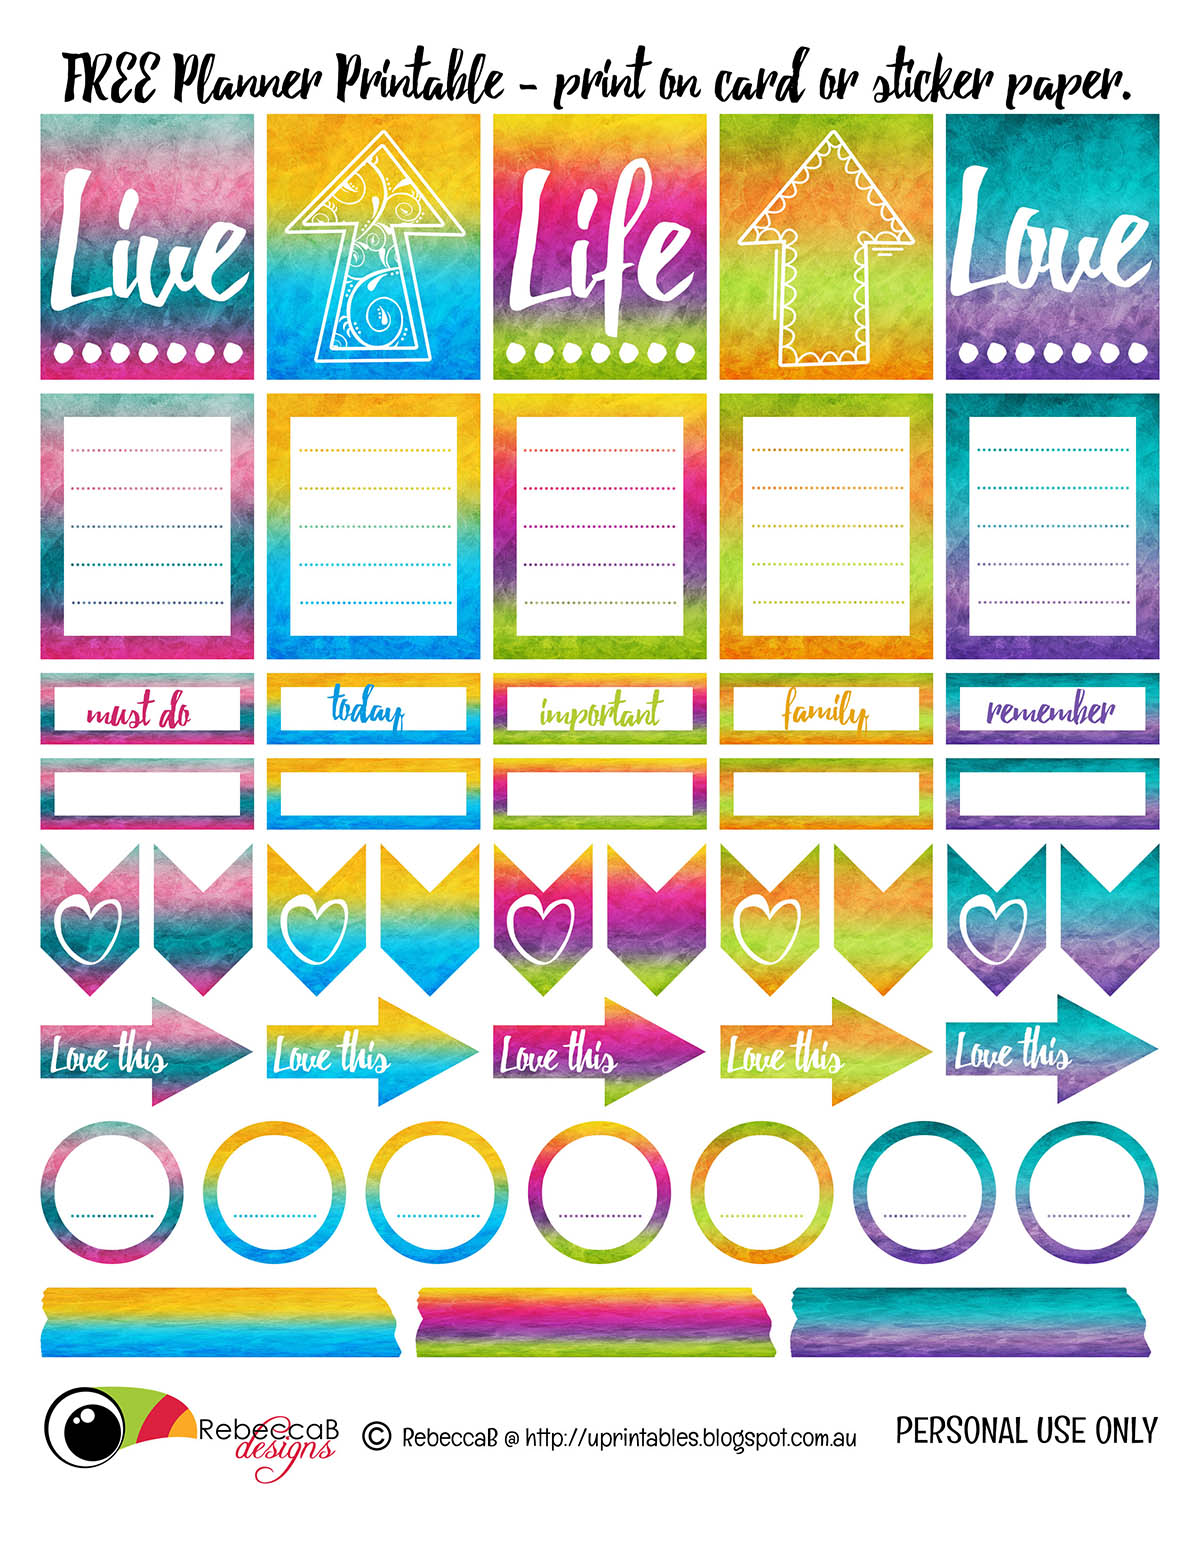 Refreshing image pertaining to printable planner stickers